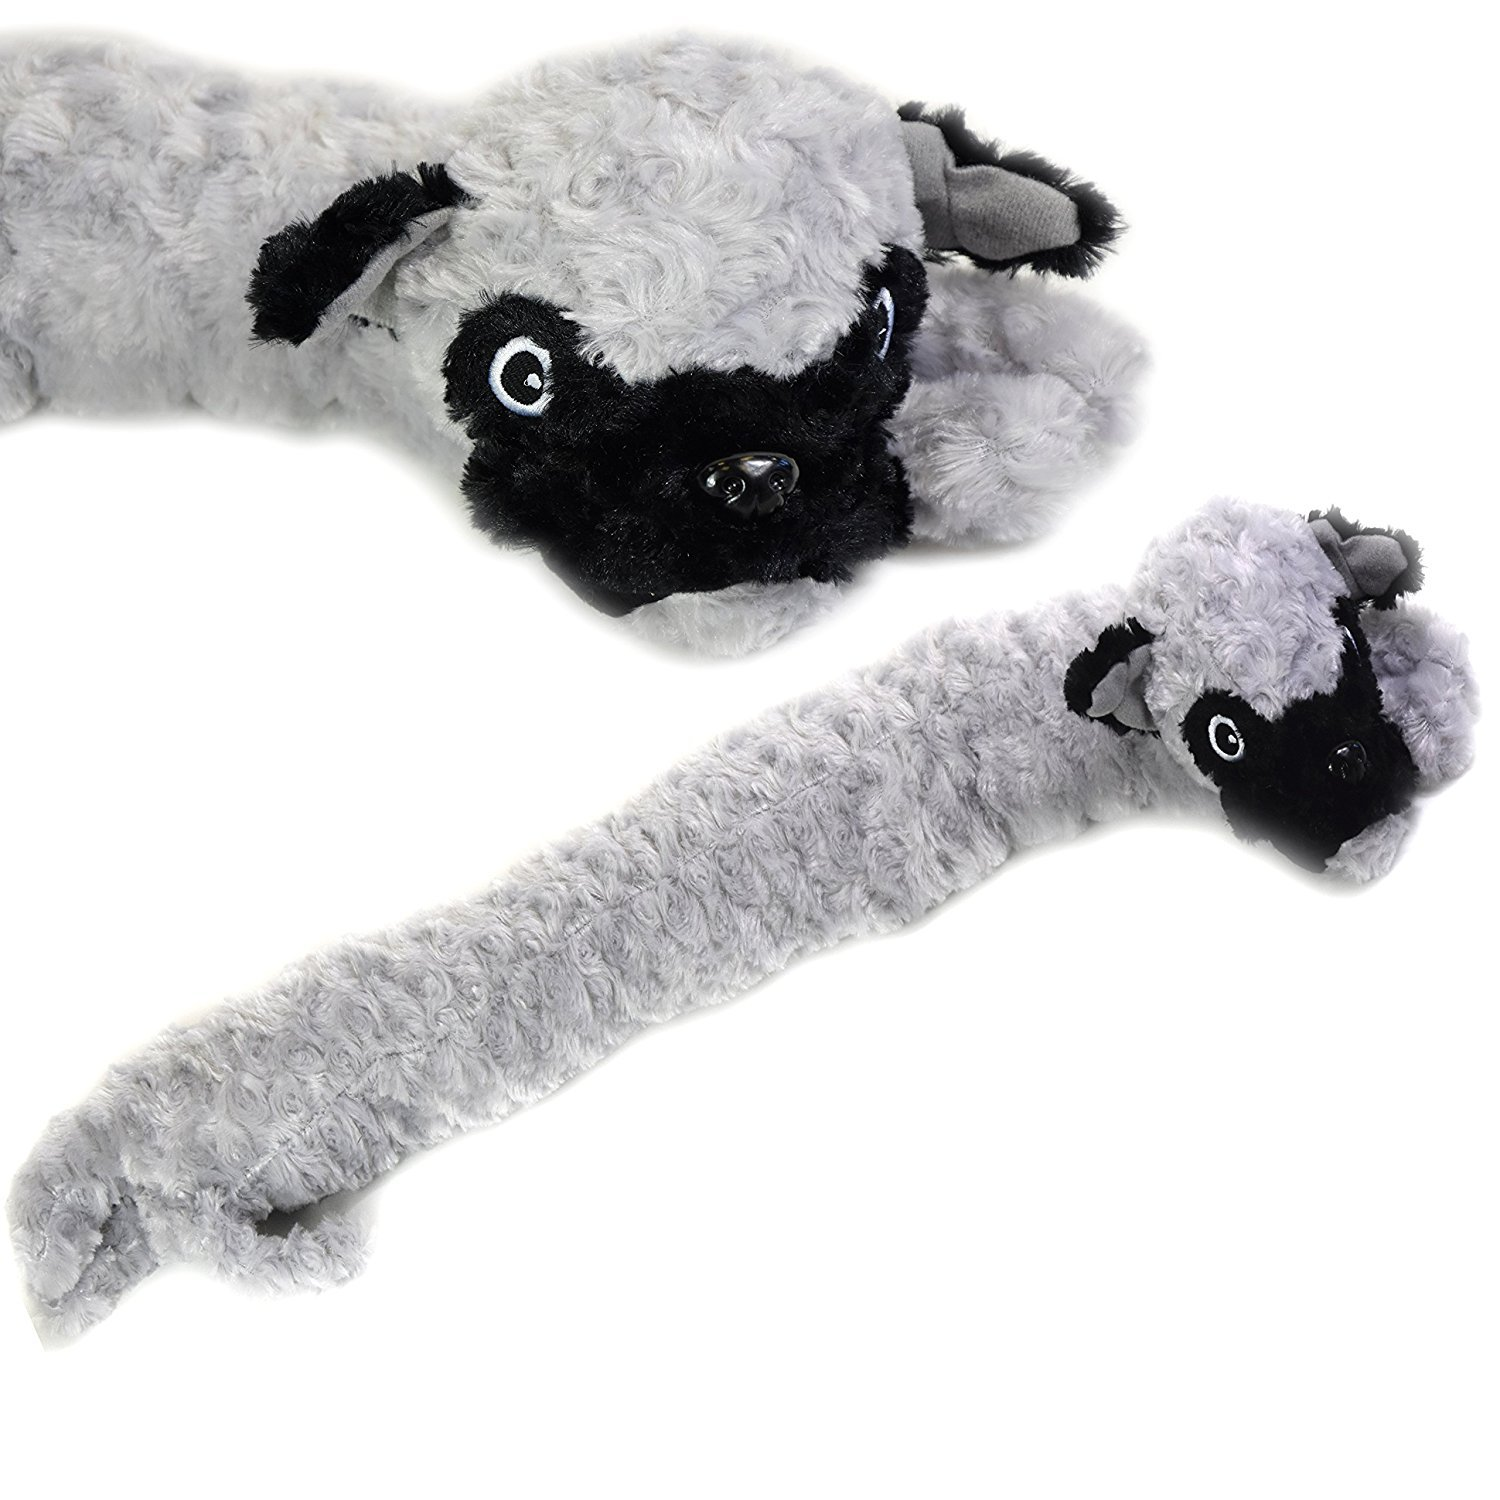 AQS Cat & Dog Draught Excluder Soft Plush Microfleece Draught Excluders 85cm Long (Grey Dog) Country Club